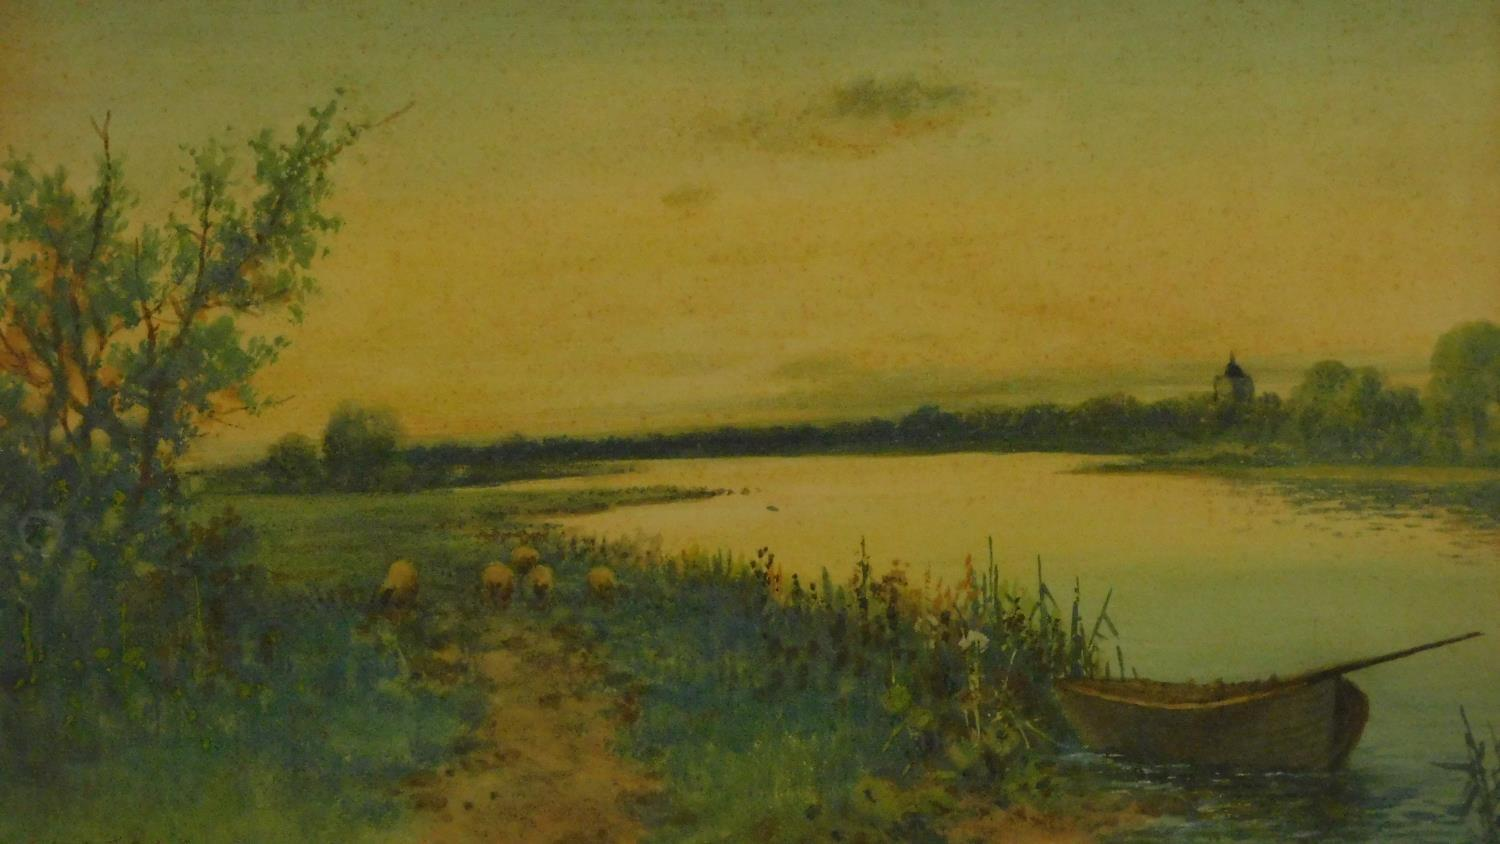 A framed and glazed watercolour, sheep on a path and boat in a riverscape, indistinctly signed. - Image 2 of 4